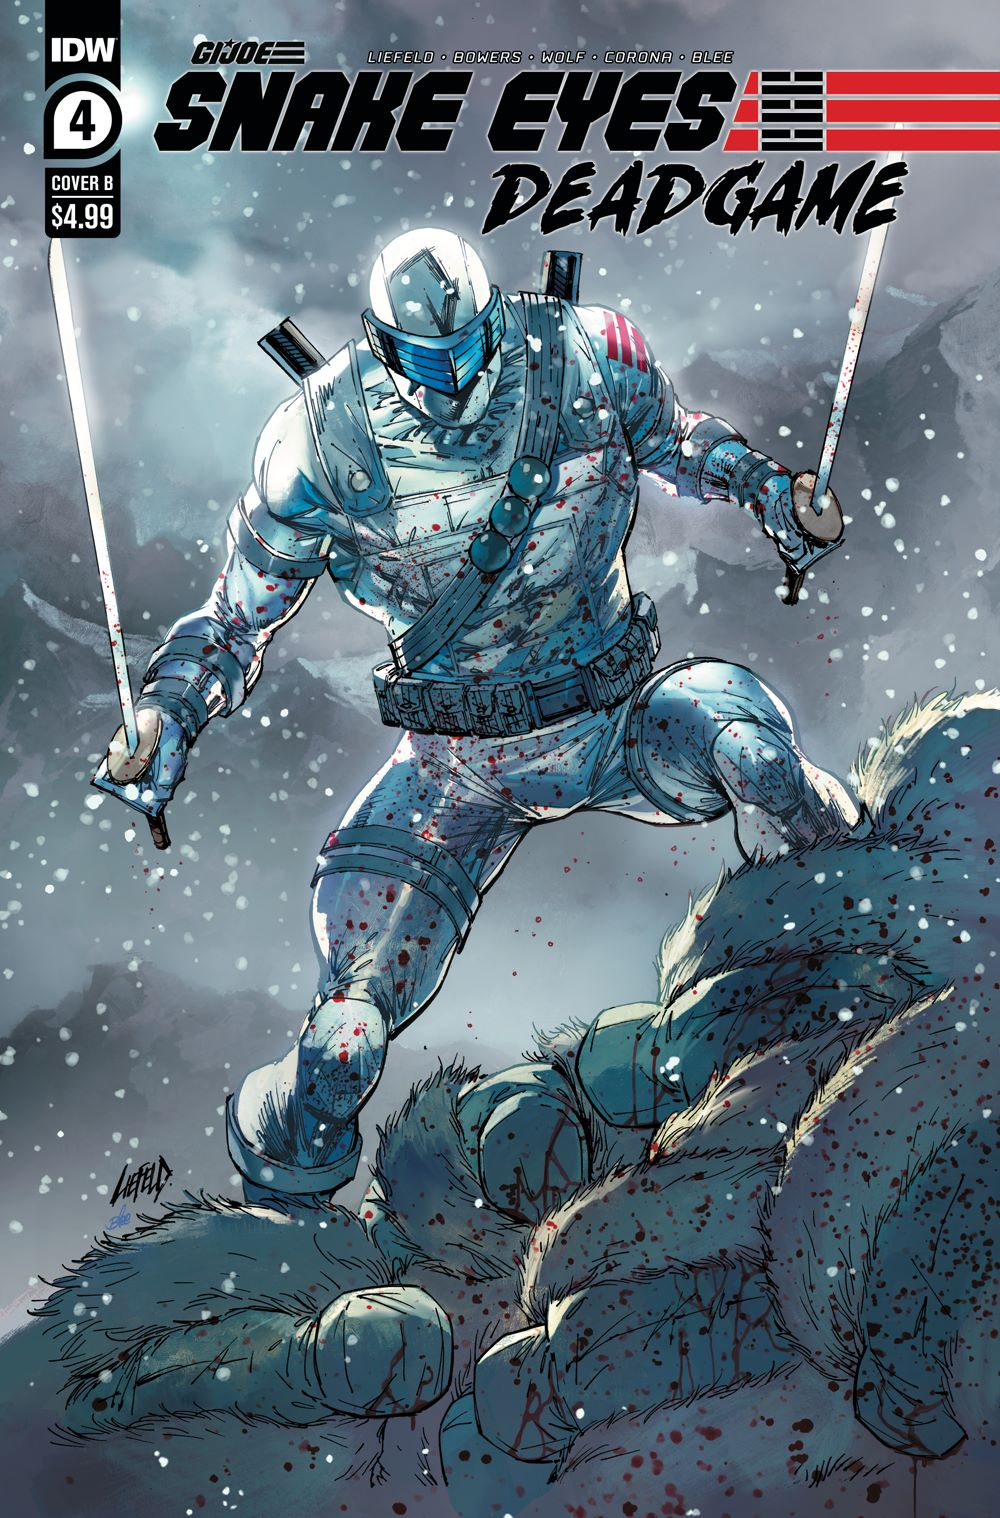 SnakeEyes_DG04-coverB ComicList: IDW Publishing New Releases for 02/03/2021